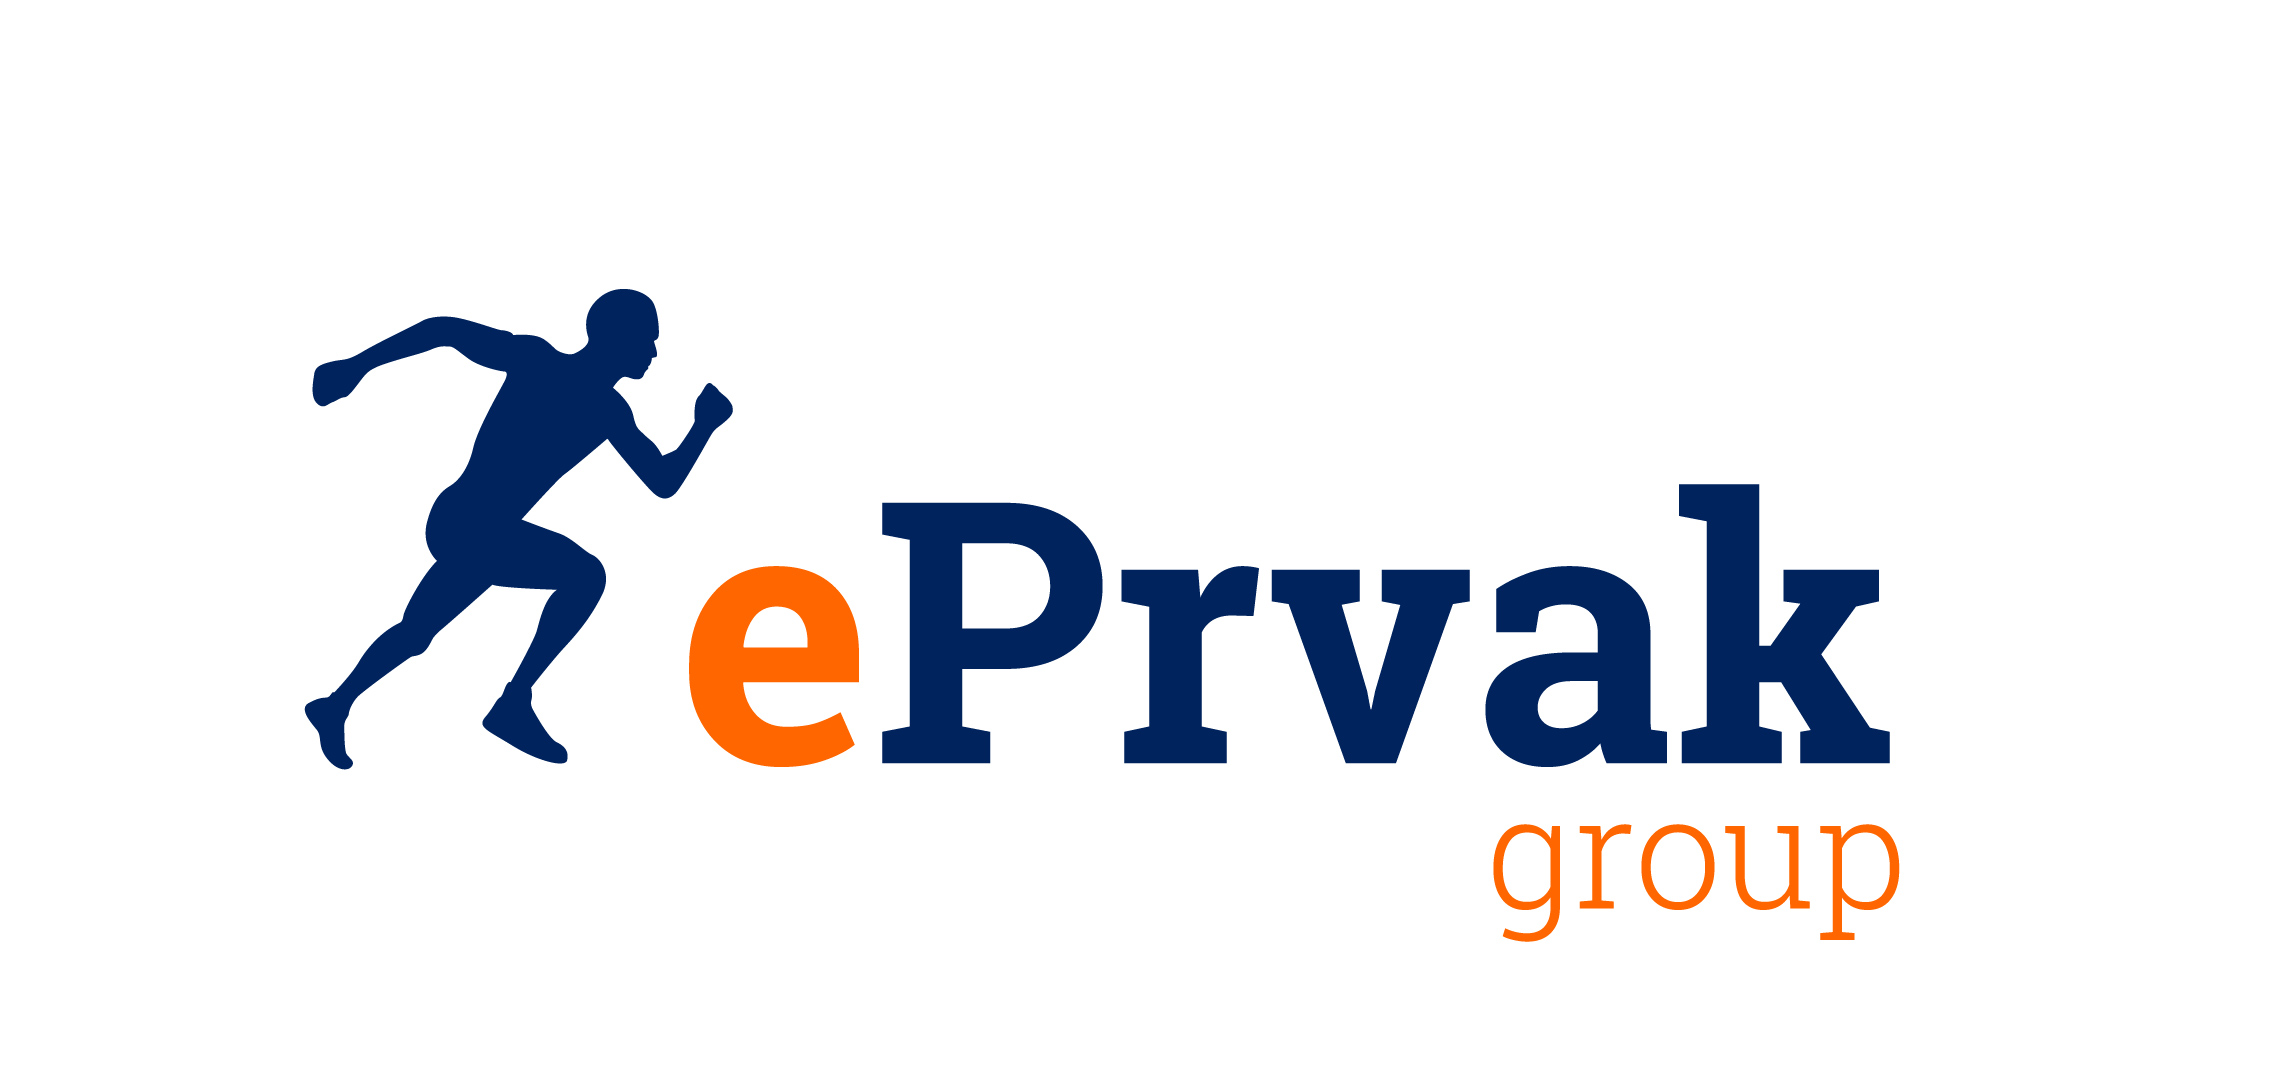 ePrvak group_logo